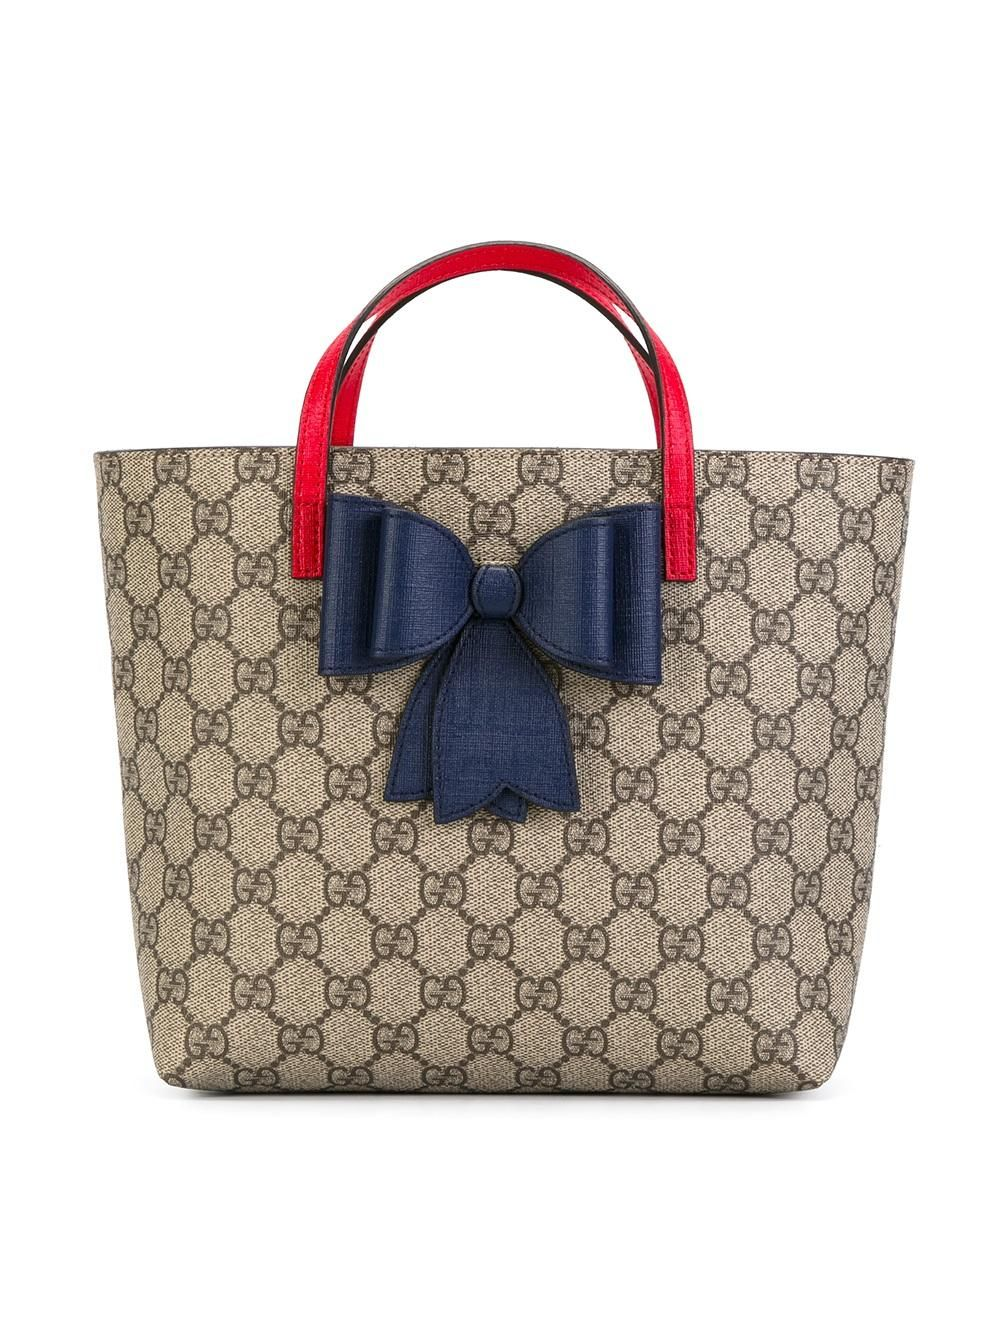 983f764e891e56 #gucci #kids #gg #tote #bag #bow #blue #red #detail #style www.jofre.eu